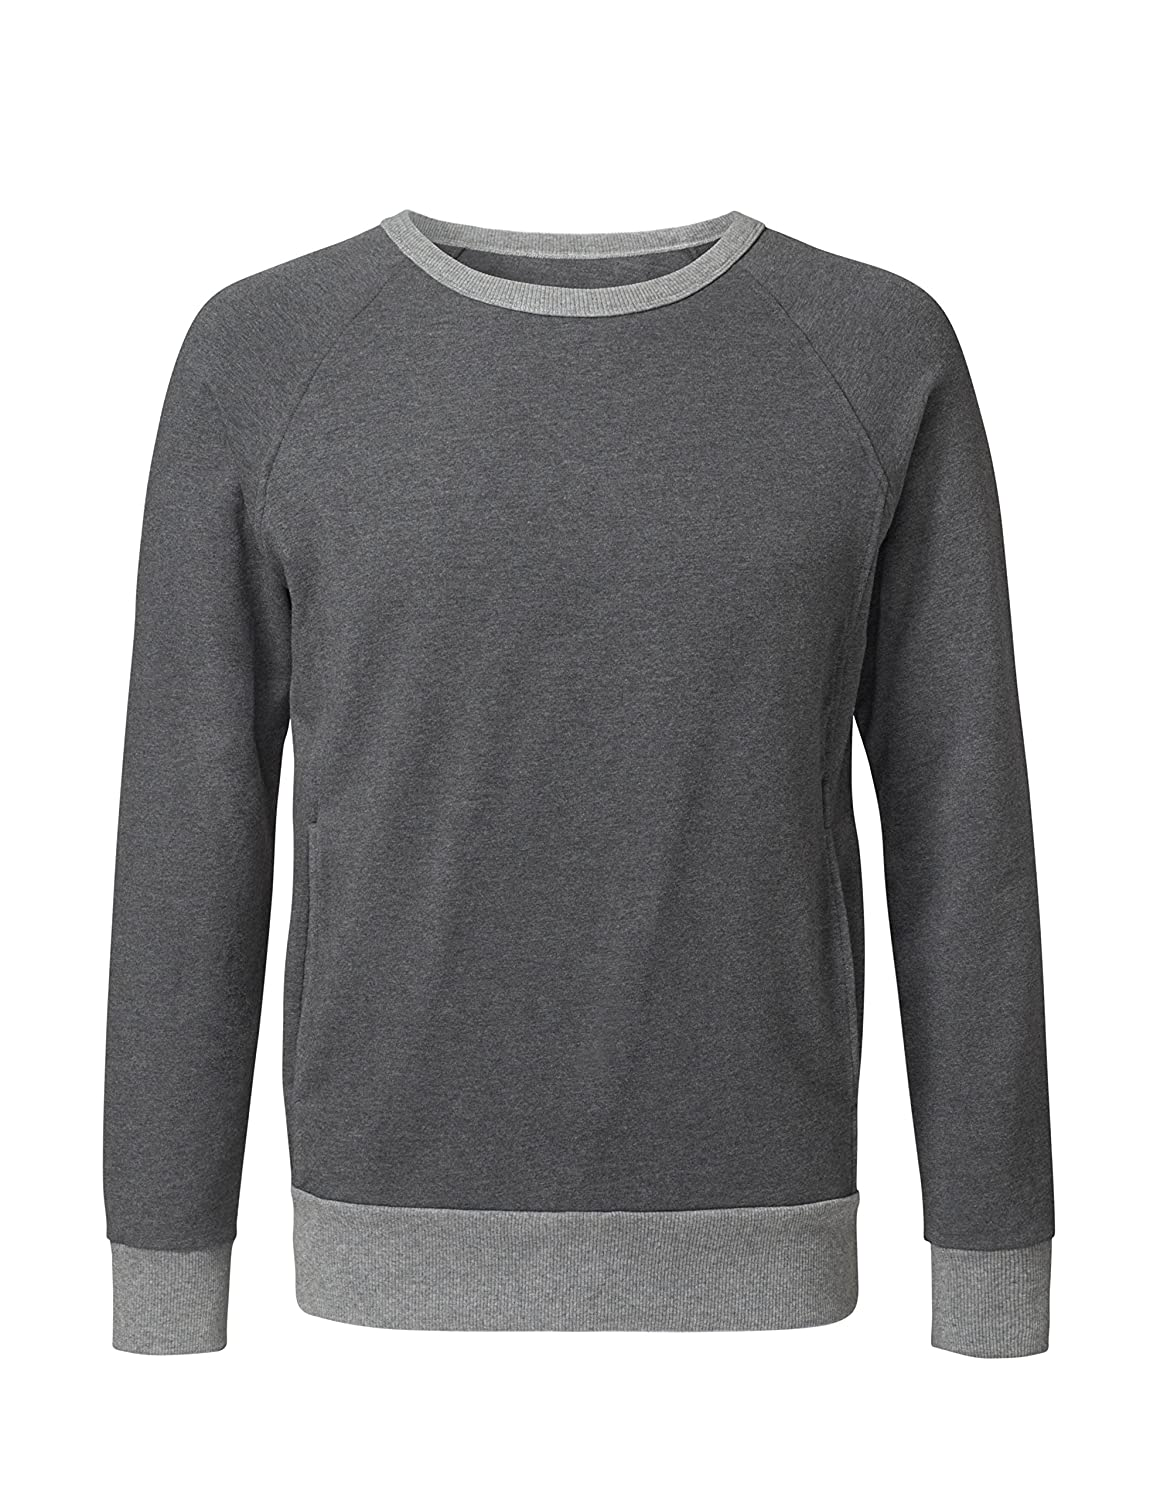 CURARE Yoga Wear Men # 197 Sweater Long Sleeves, Gris ...